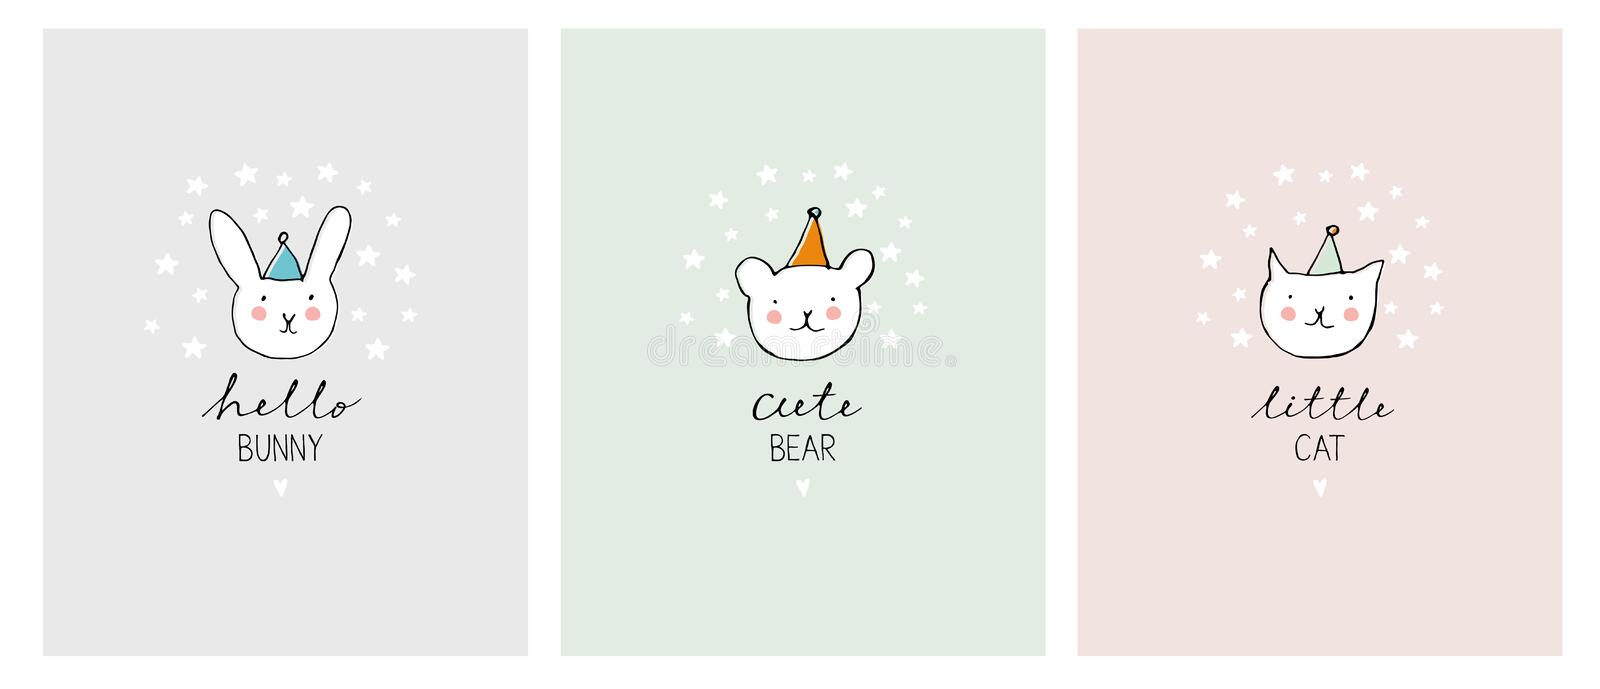 Set of Cute Hand Drawn Decorative Pets Illustration. Adorable Cat, Bunny and Bear. royalty free illustration